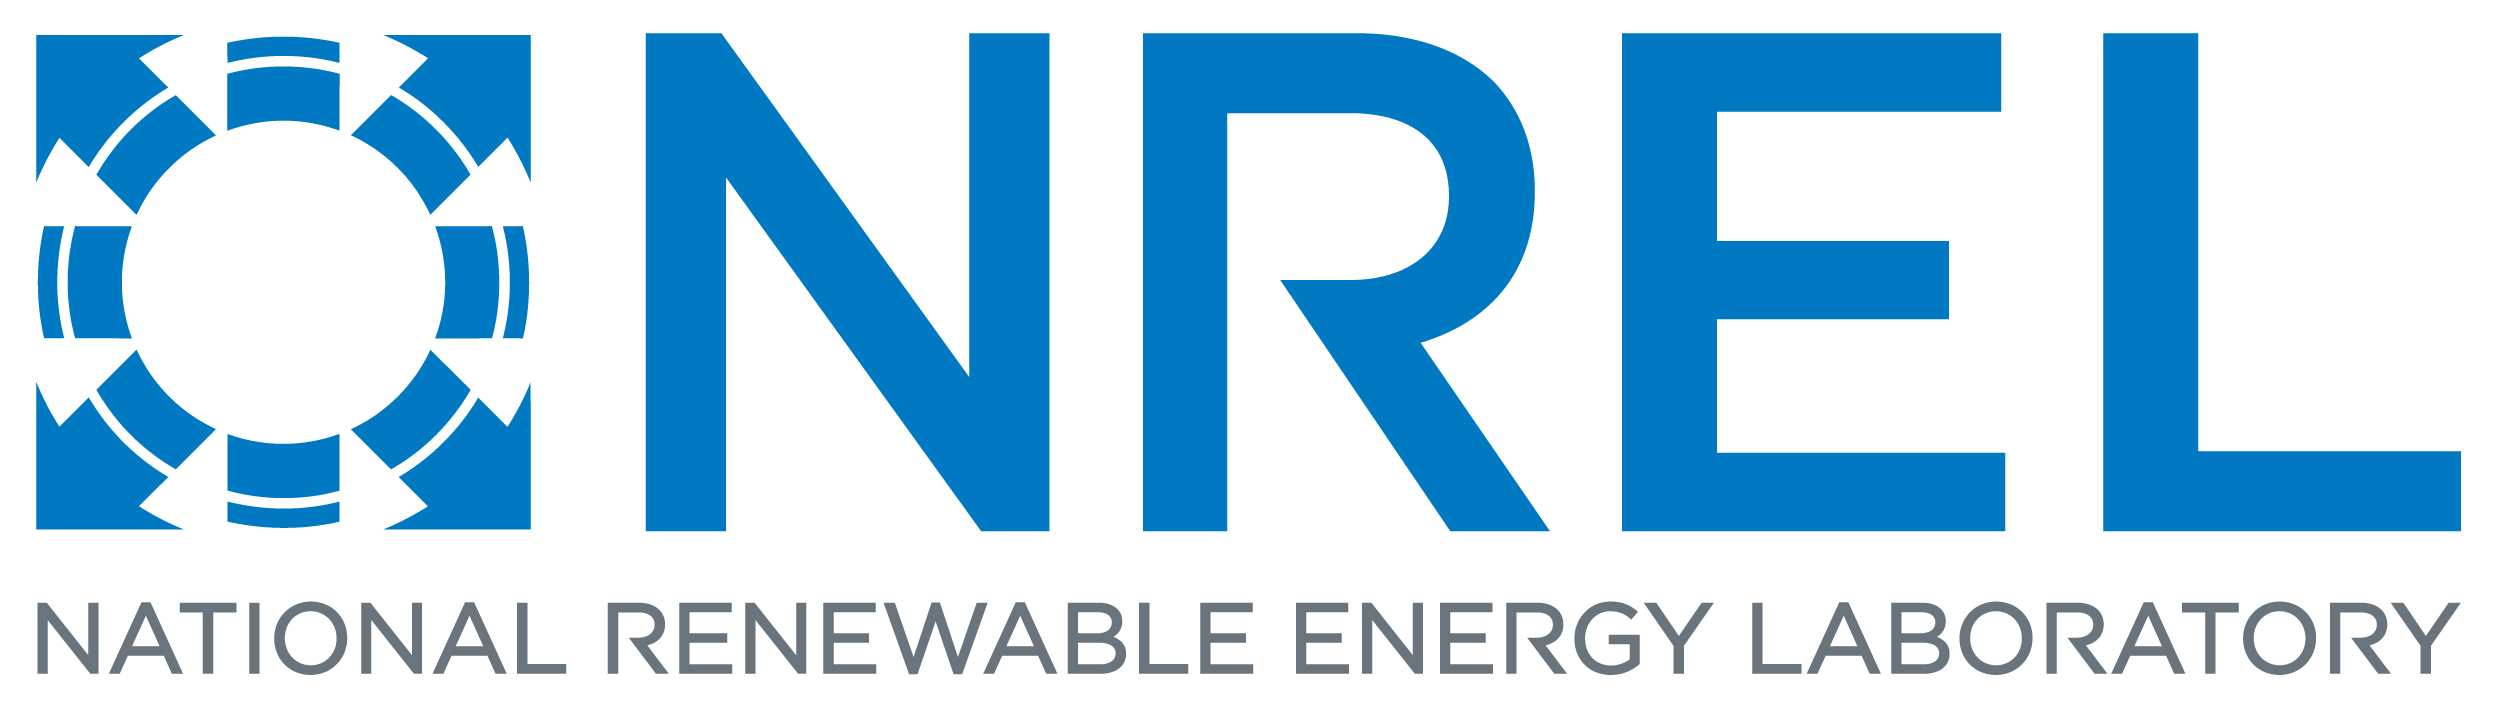 NREL Banking on solar working group